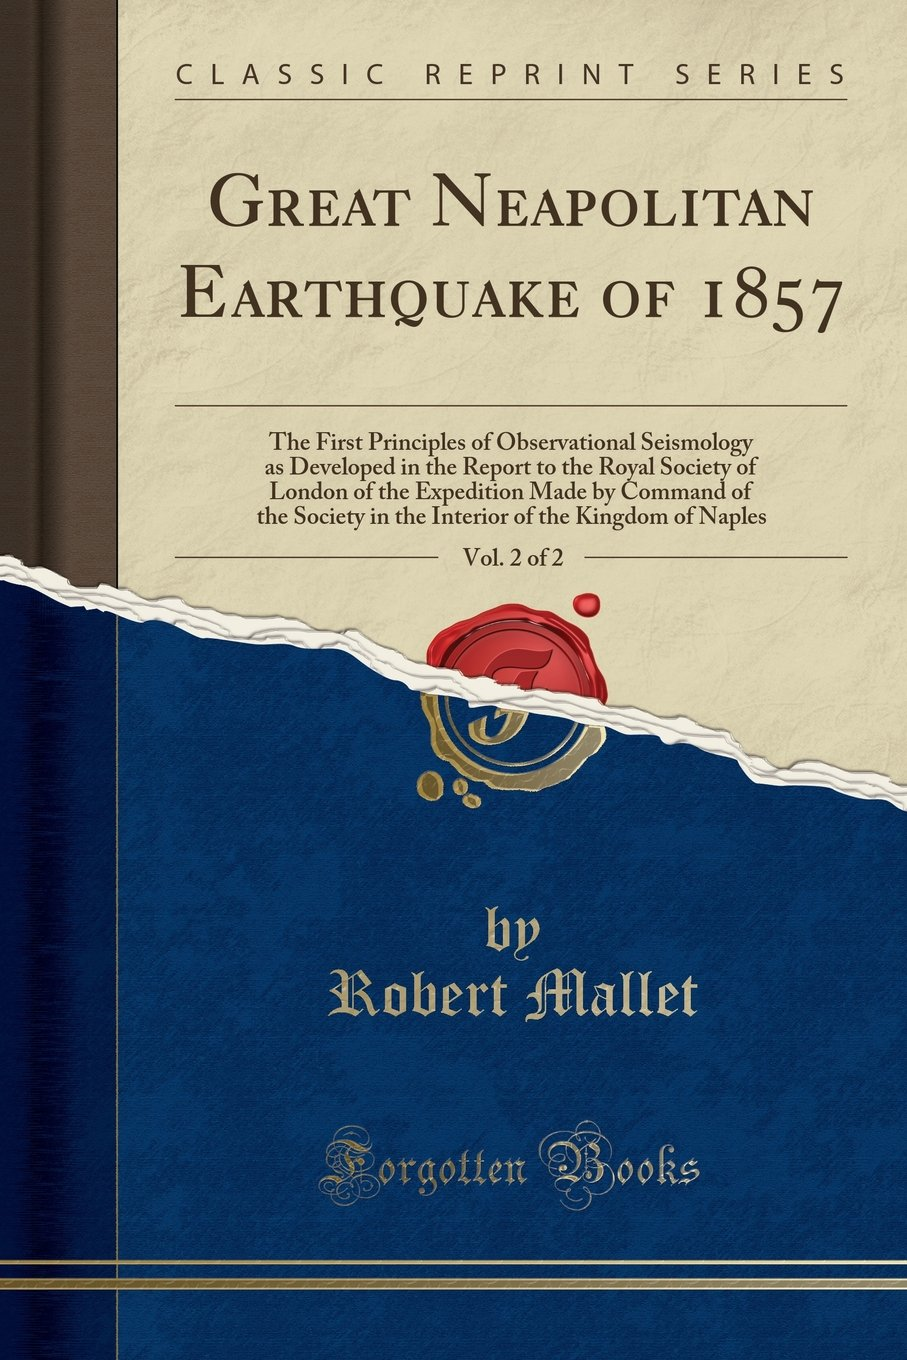 Great Neapolitan Earthquake of 1857, Vol. 2 of 2: The First Principles of Observational Seismology as Developed in the Report to the Royal Society of ... in the Interior of the Kingdom of Naples ebook